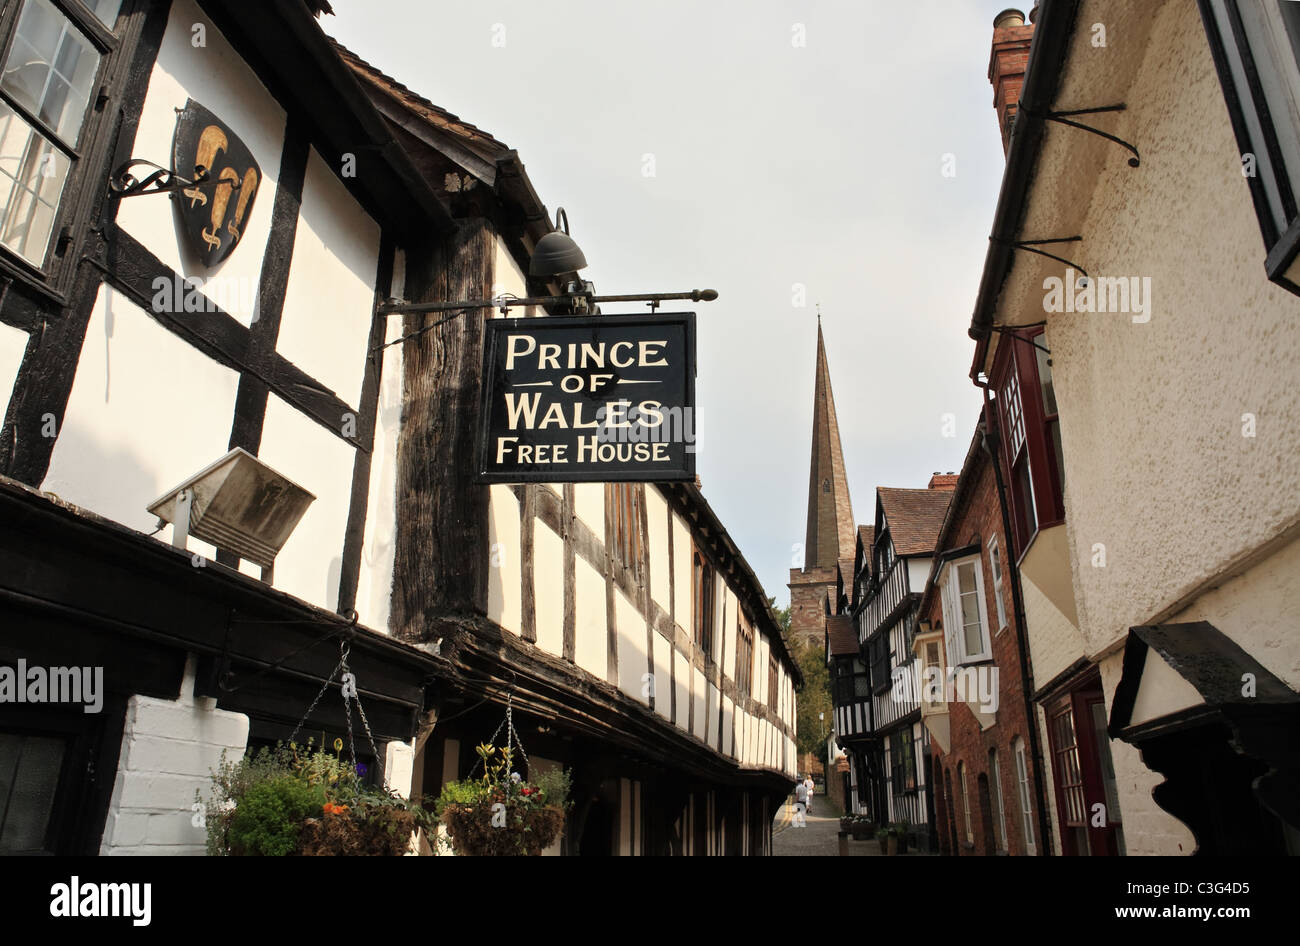 Church Lane Ledbury, Prince of Wales pub sign and church spire in the background. Herefordshire, England, UK - Stock Image